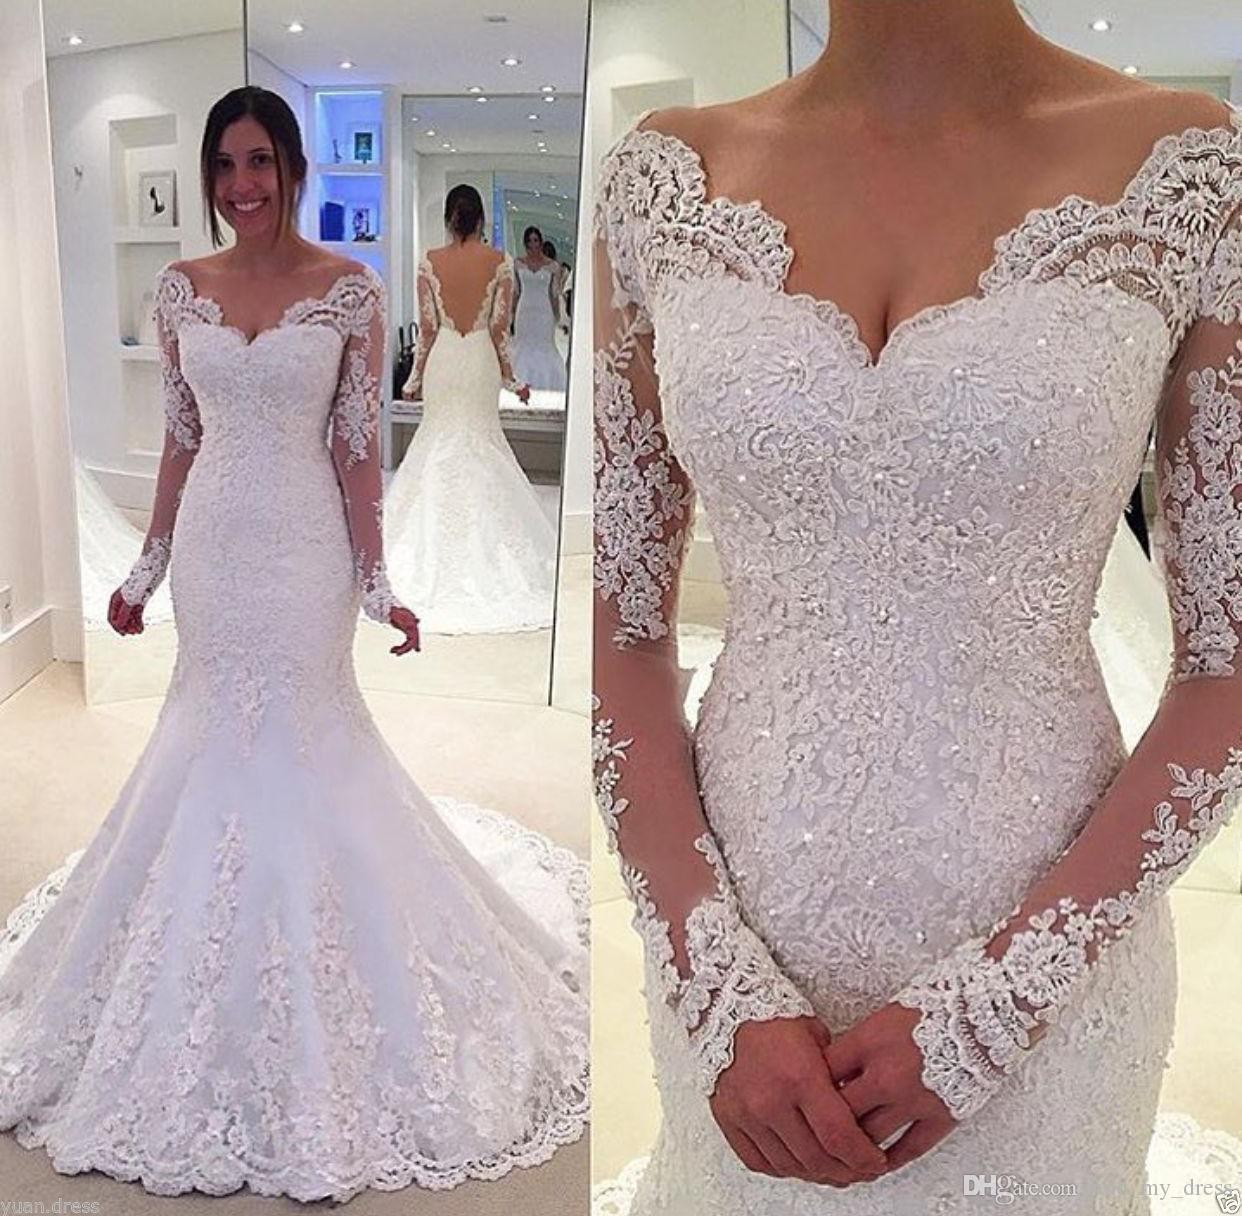 2019 Gorgeous Backless Off Shoulder See Through Crystal Princess Beading Lace Trumpet Bridal Gown Long Sleeve Party Wedding Dress Appliques